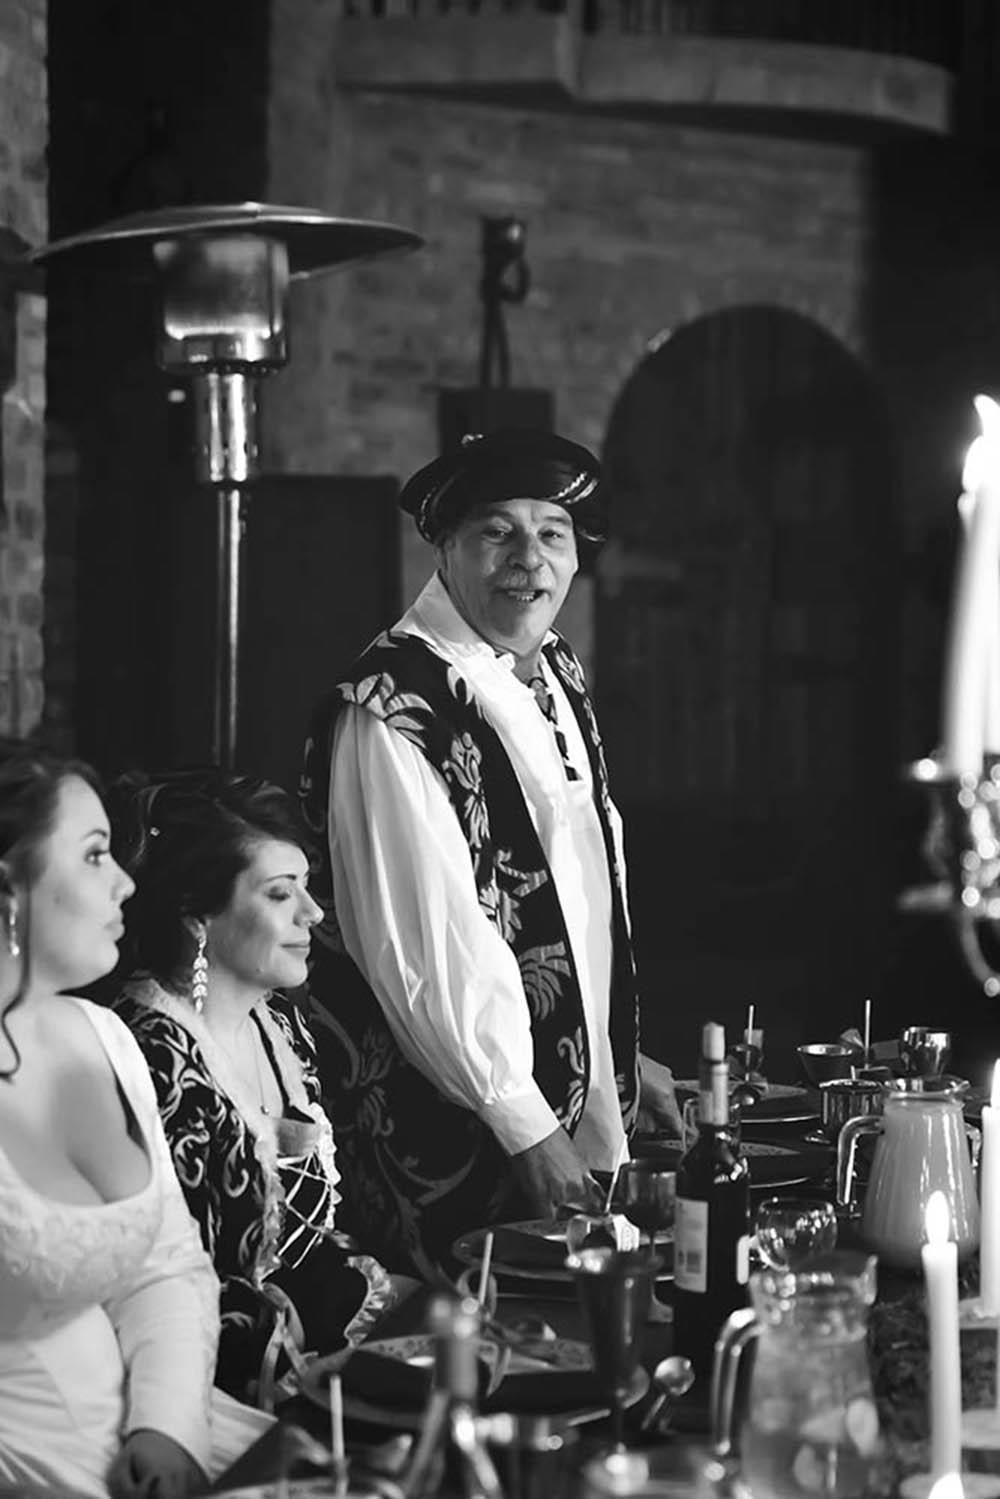 medieval-themed-wedding-medieval-wedding-dgr-photography-castle-wedding-117